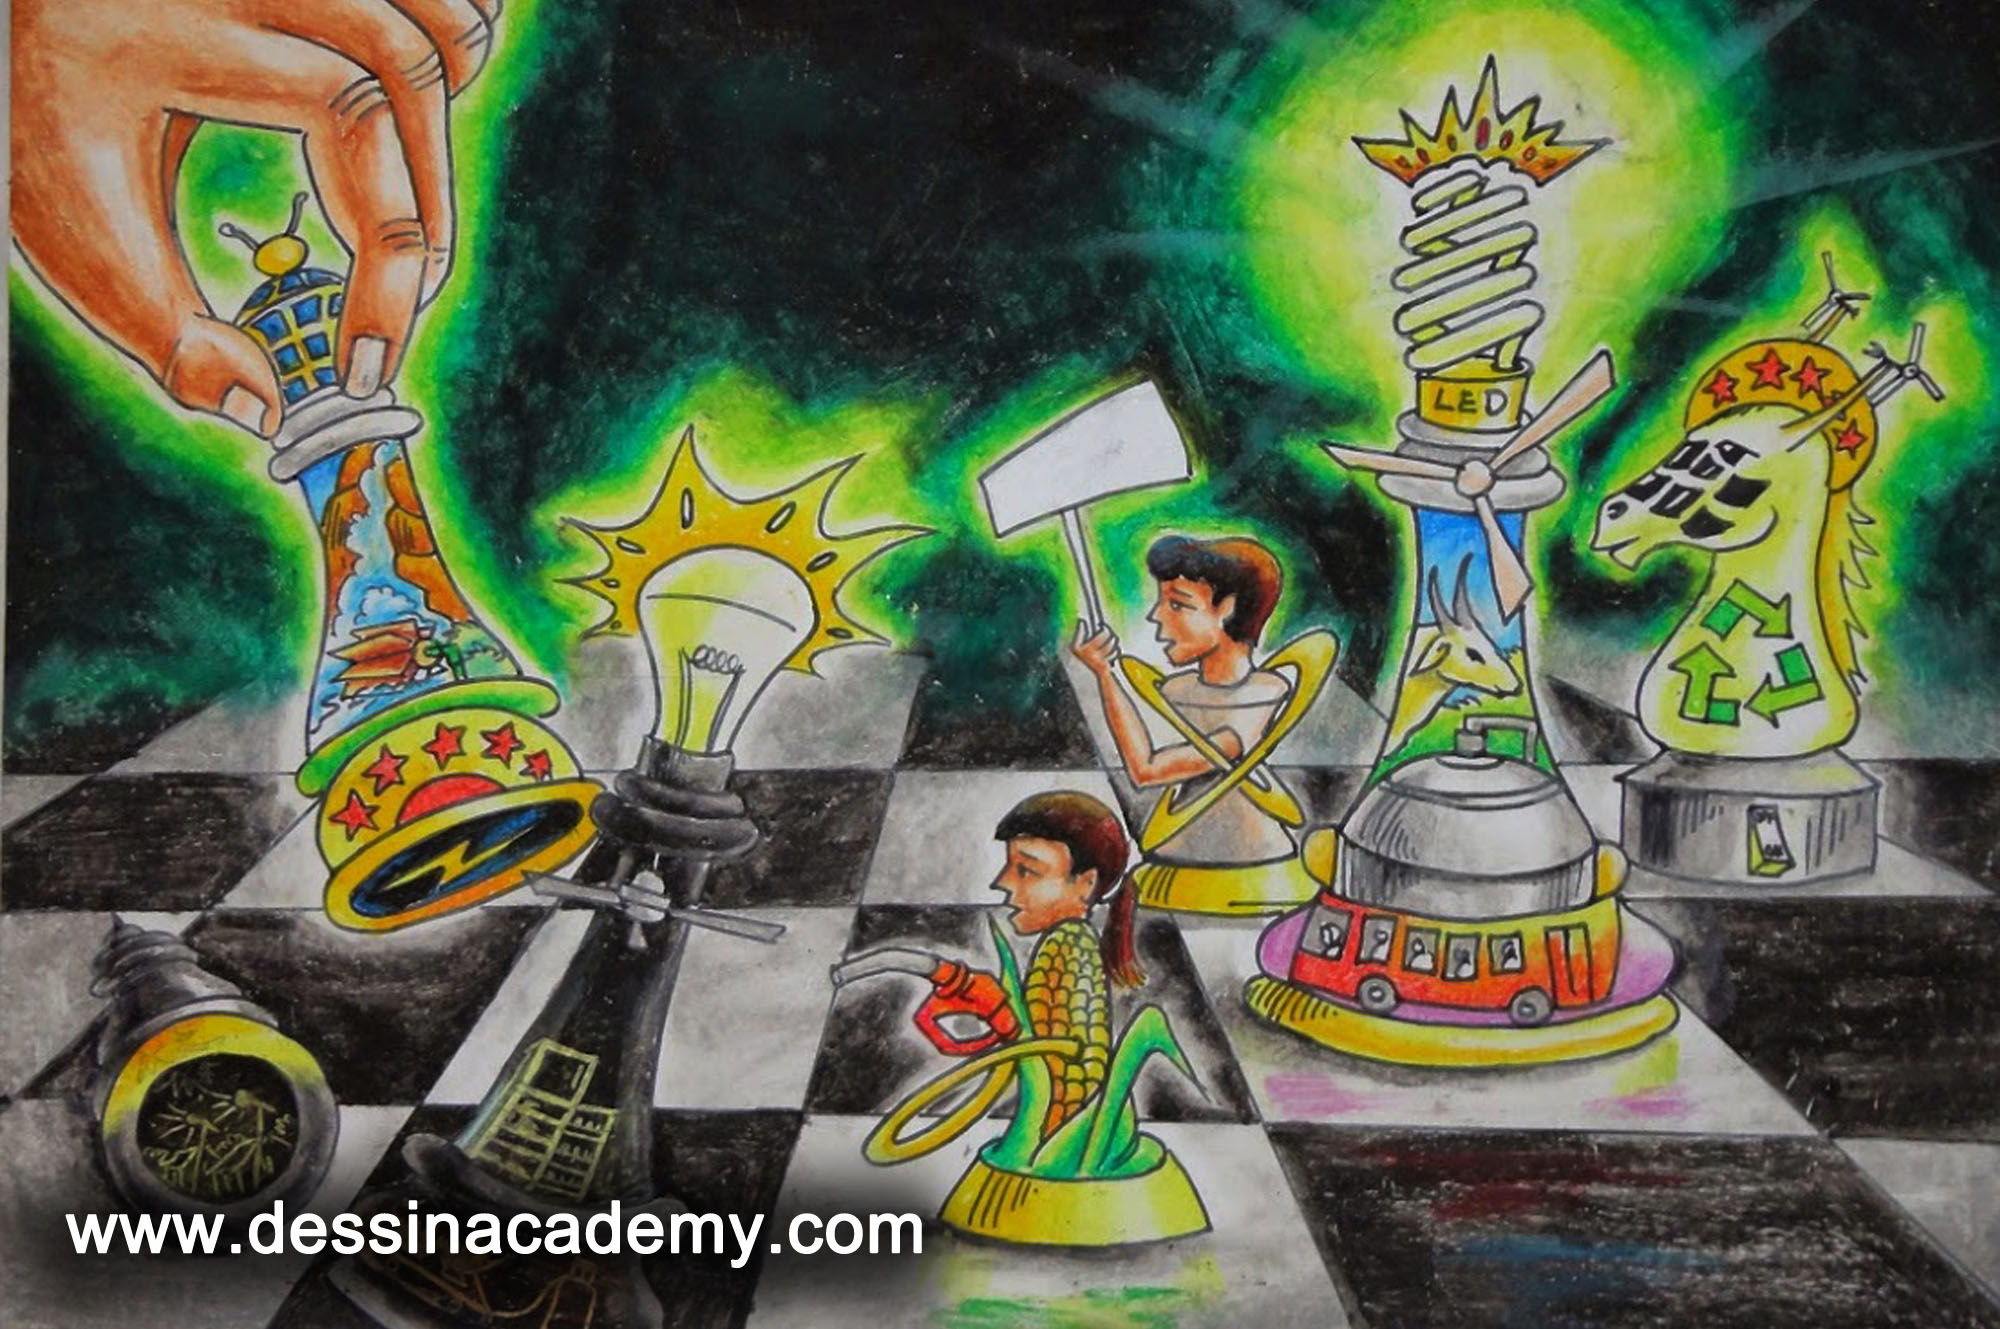 Dessin School of Arts Students Painting, Dessin School of Arts, charcoal Drawing School For Kids in chennai